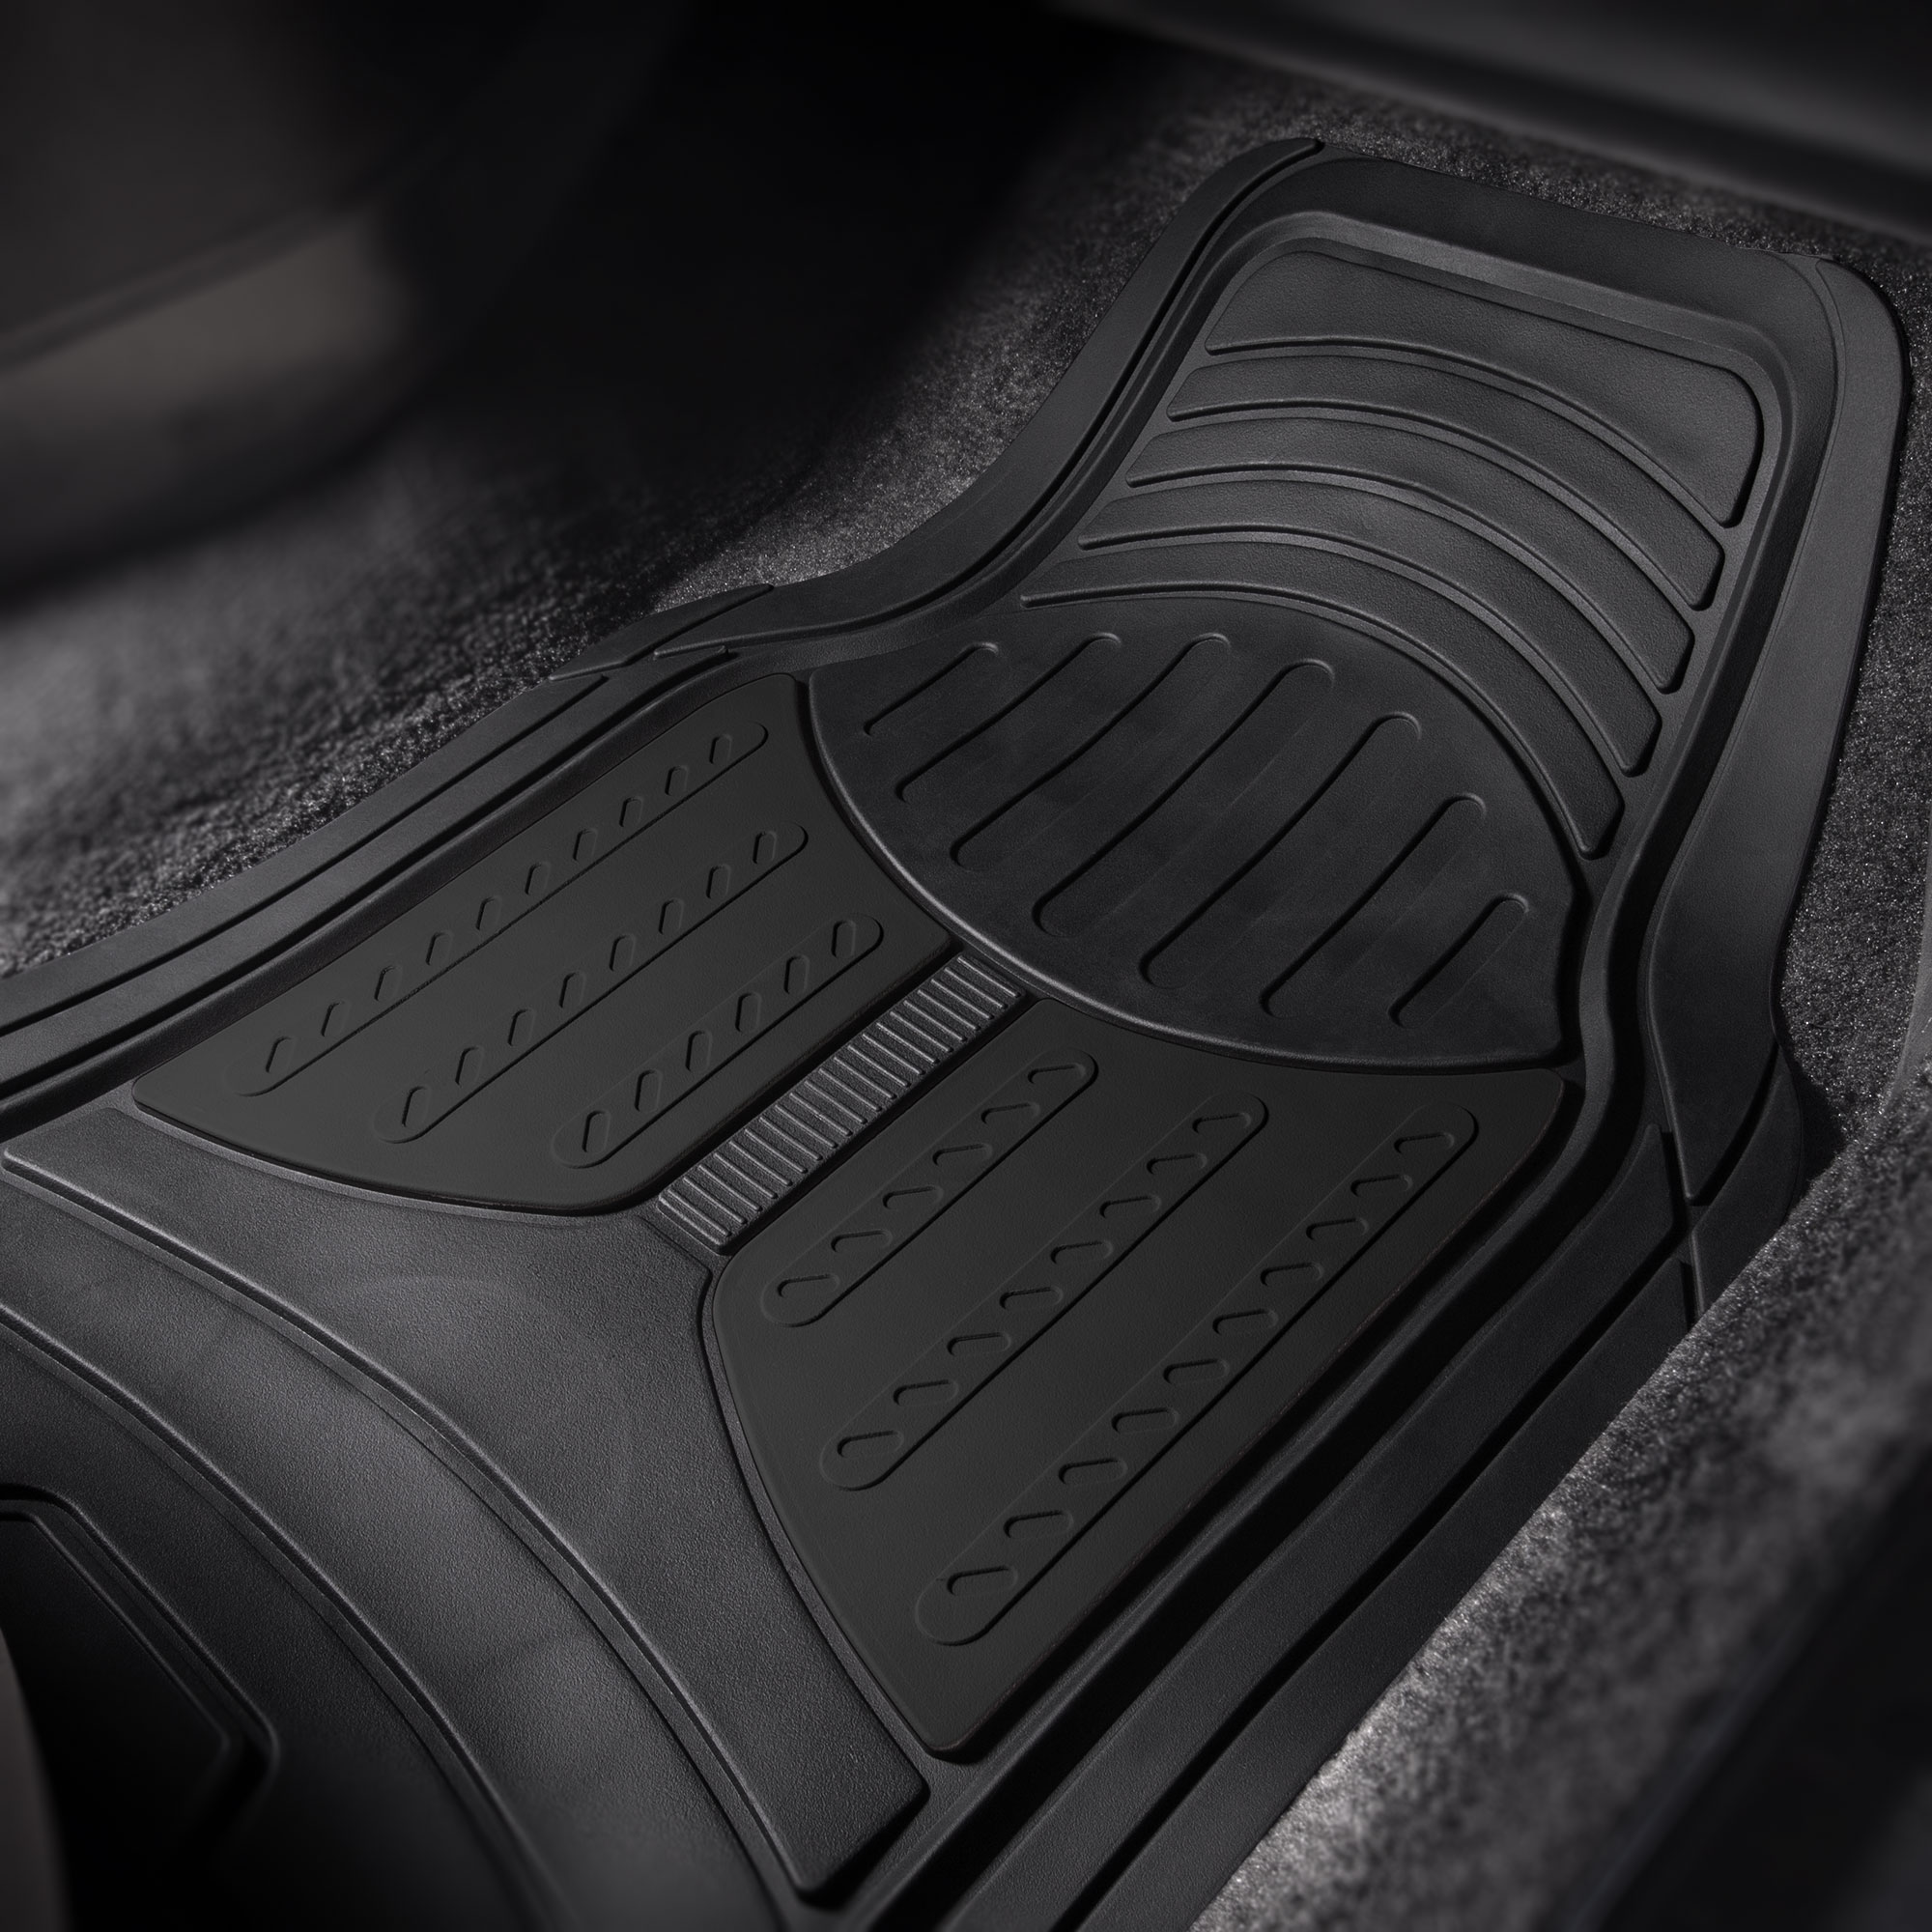 thumbnail 6 - Car Floor Mats for All Weather Rubber 2-Tone Design Heavy Duty - 4 Pc Set